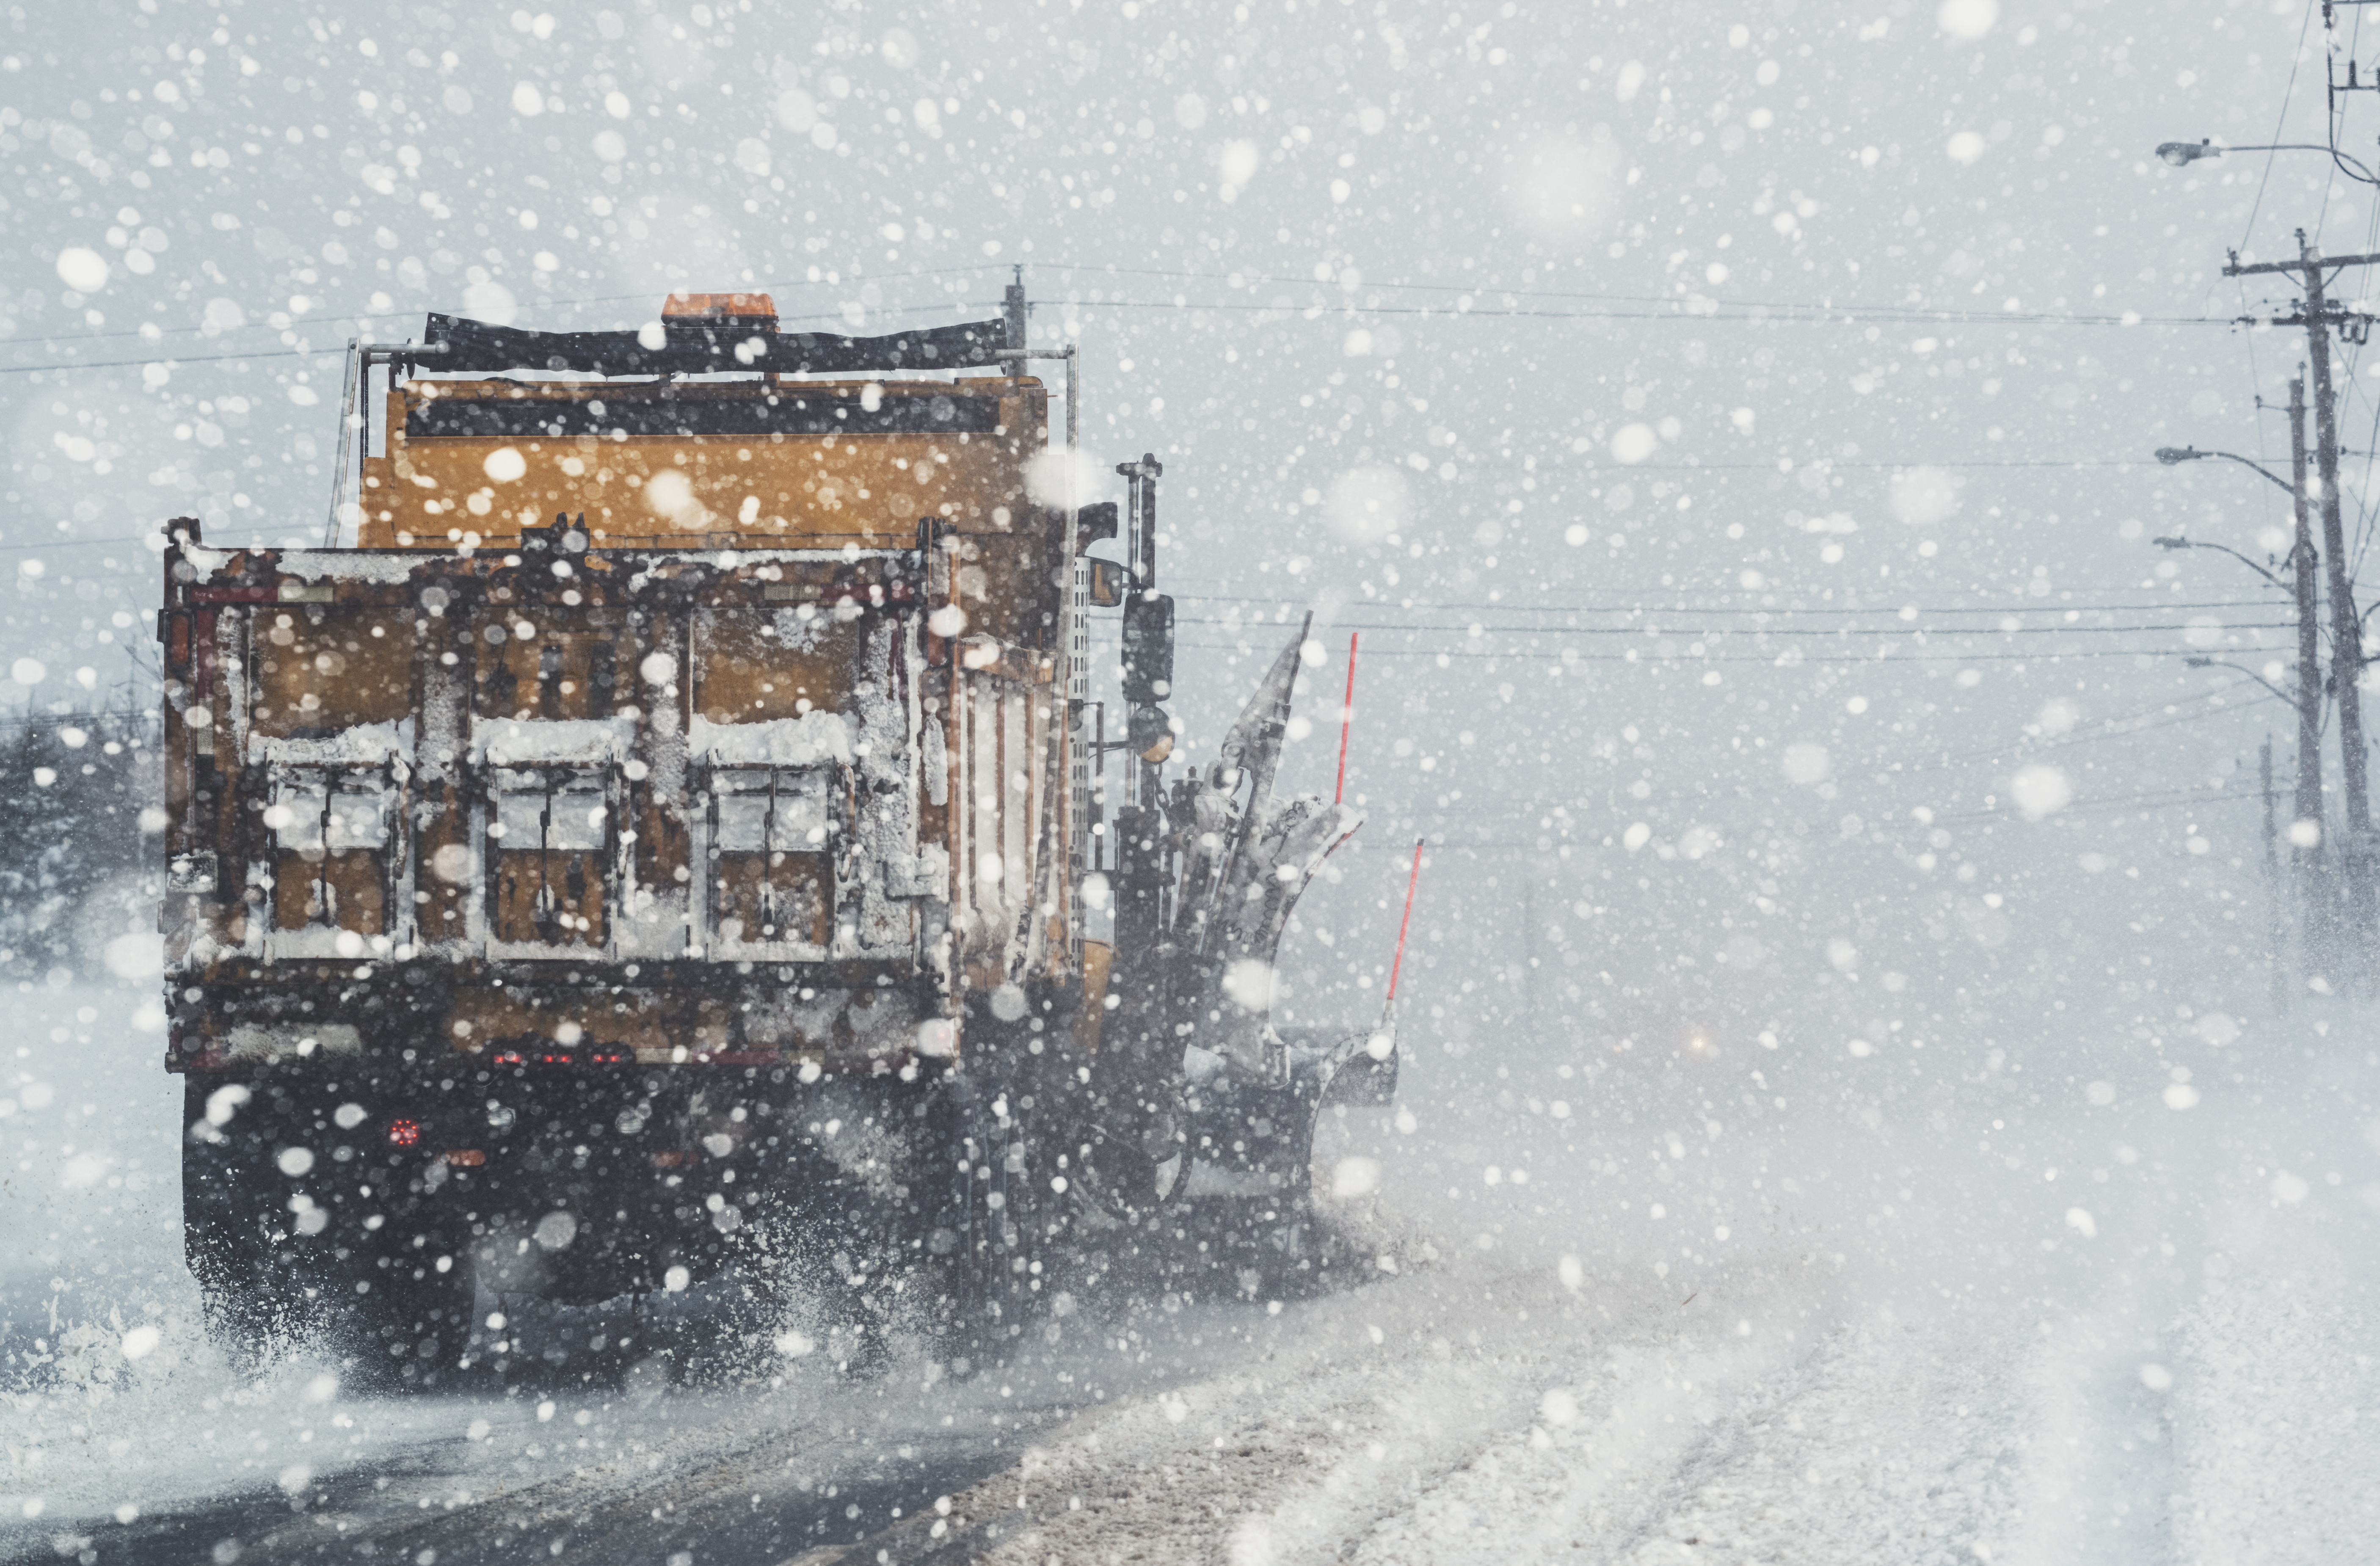 A snowplow clears a city street during a very heavy snowfall.